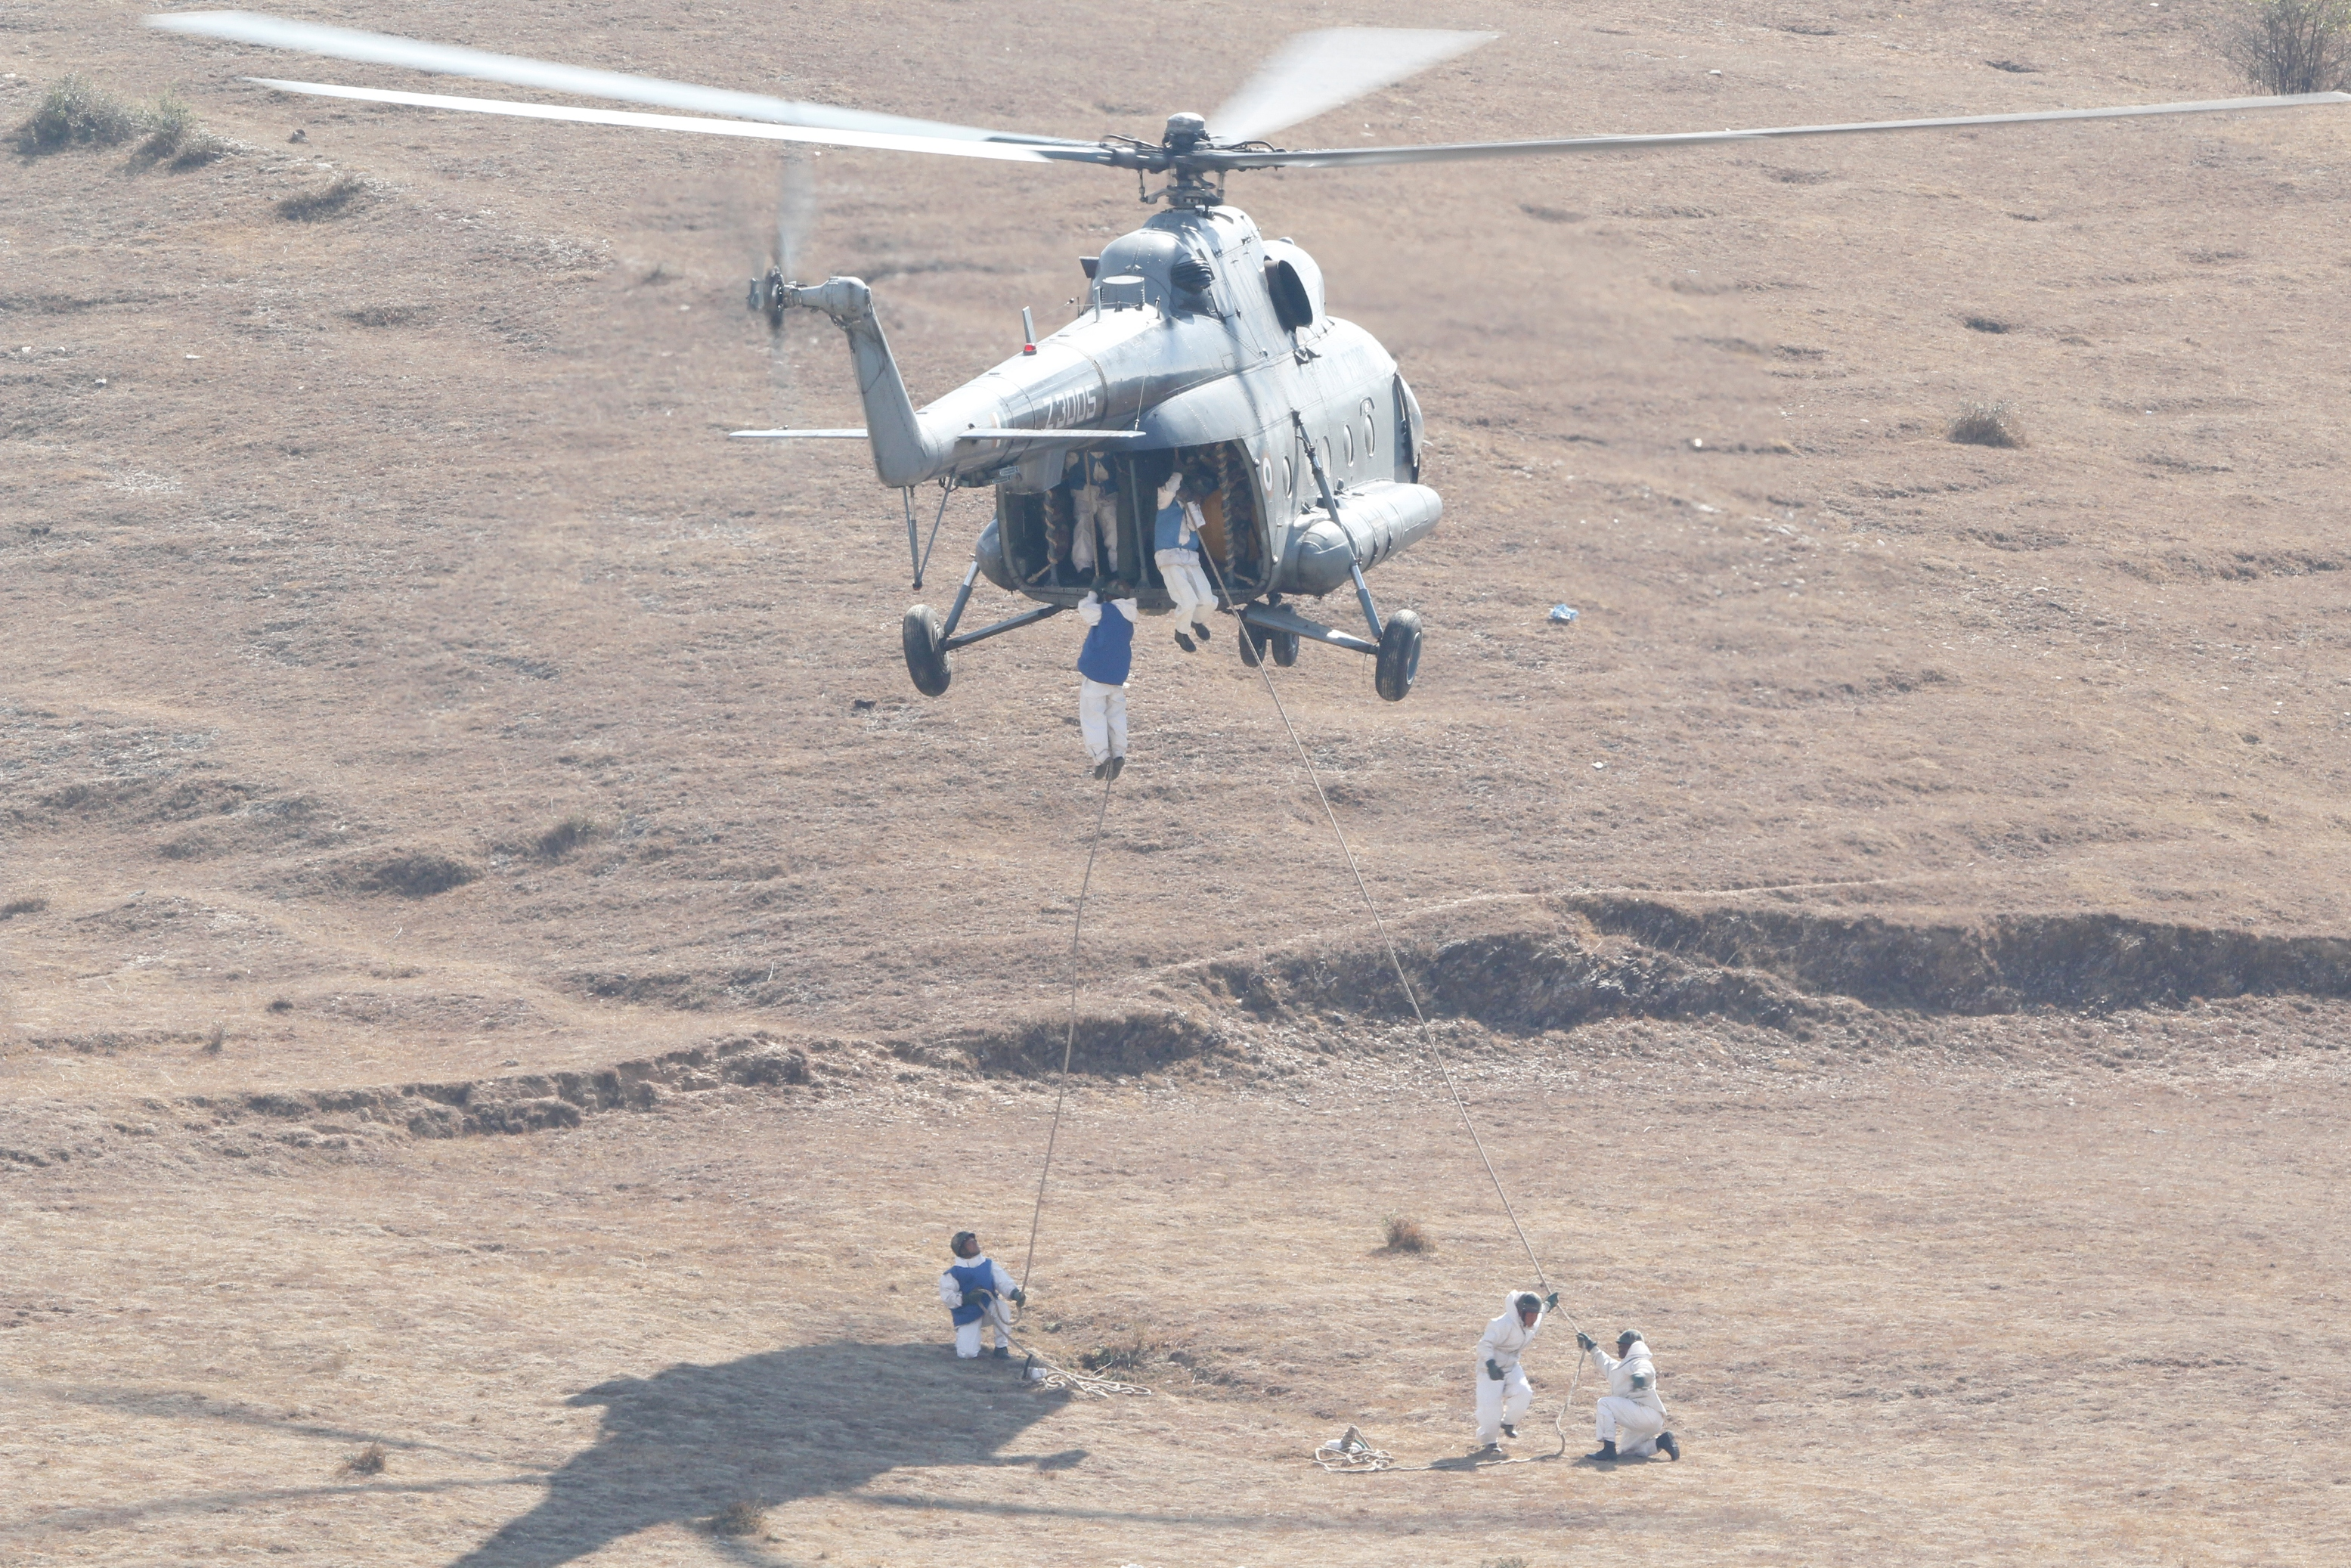 HELIDROP OF MEDICAL AID TROOPS DURING DISASTER MGMT TRAINING (3).JPG